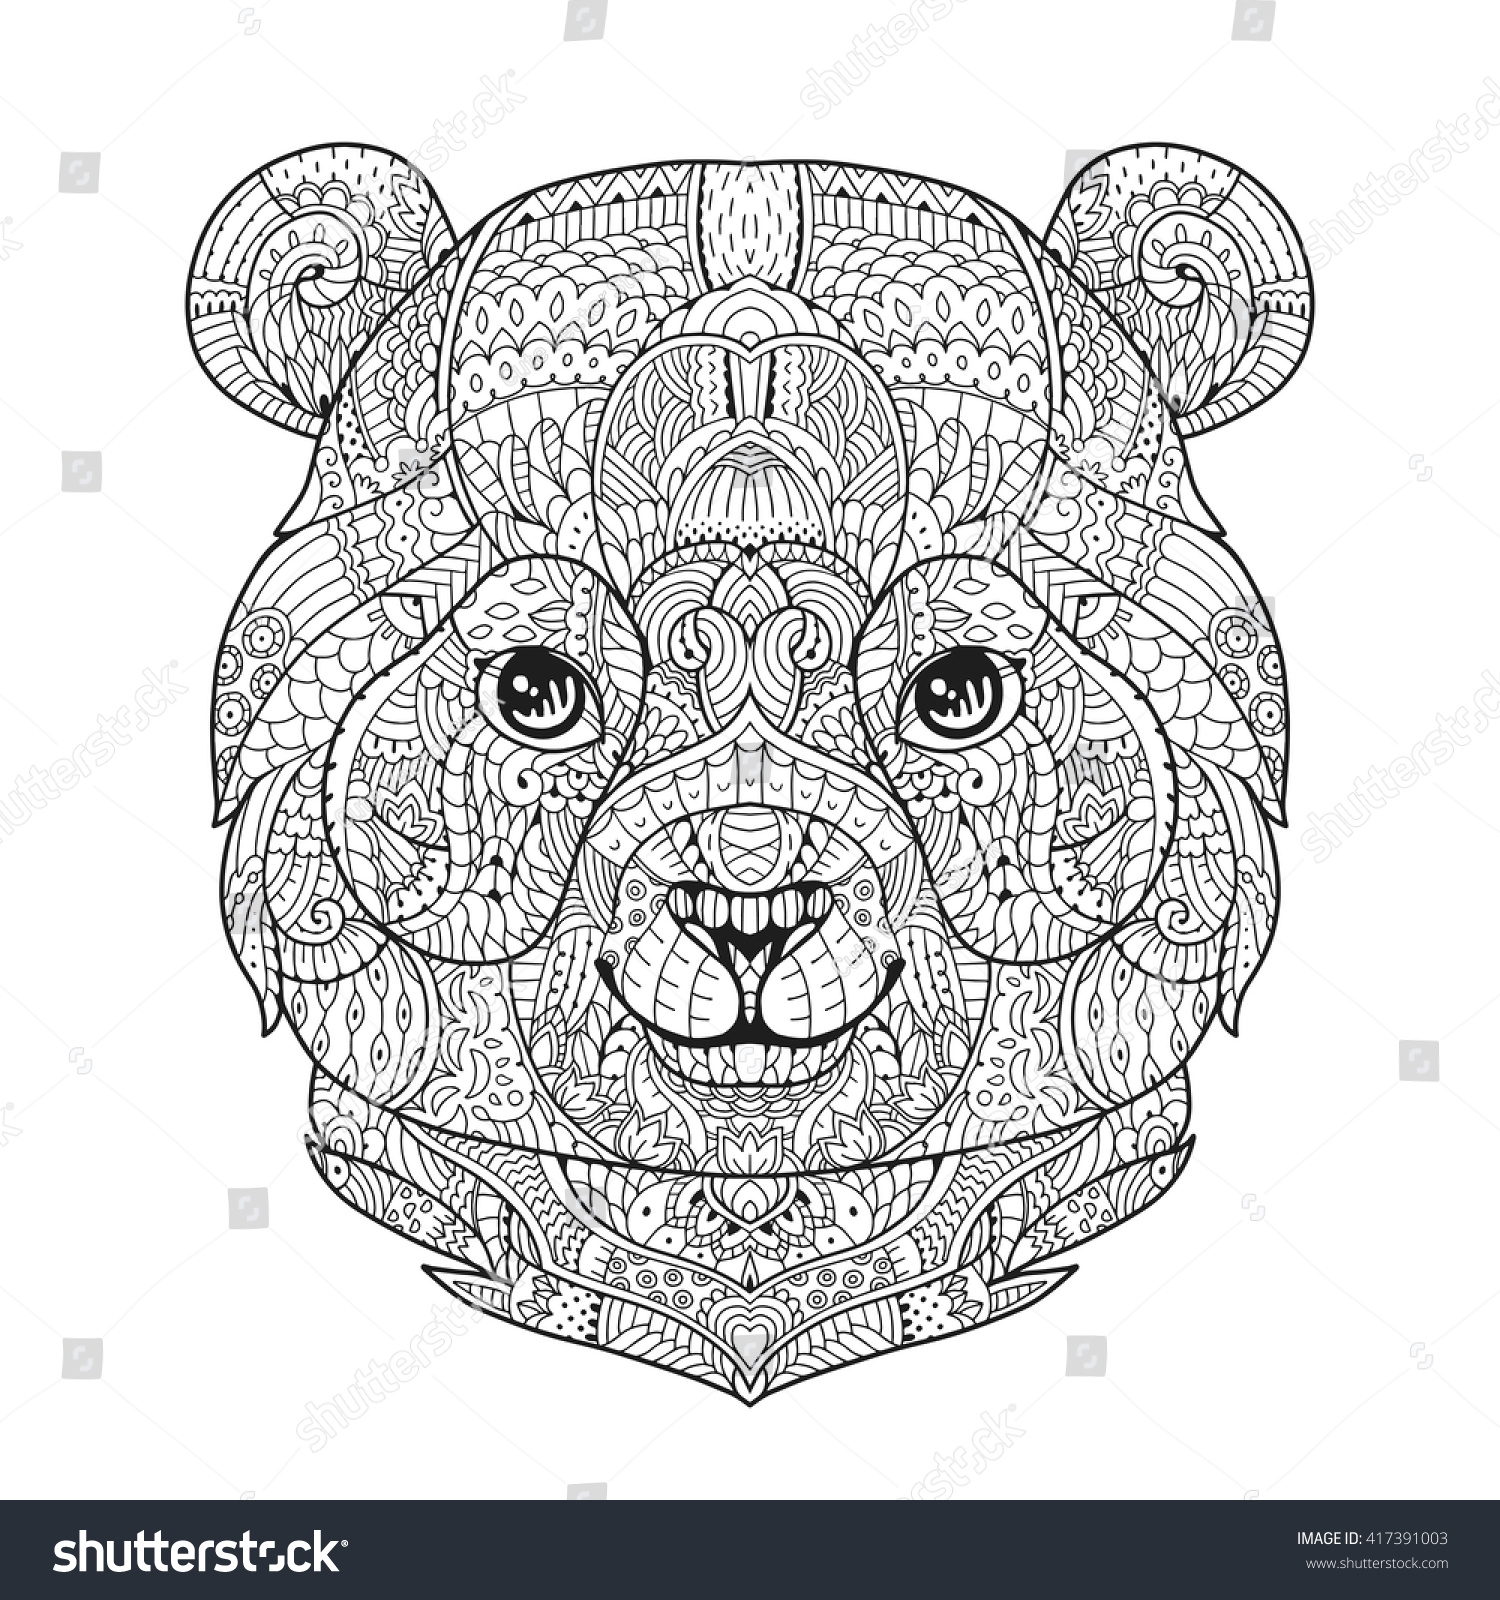 Zen art panda bear head zentangle stock vector 417391003 for Bear head coloring page